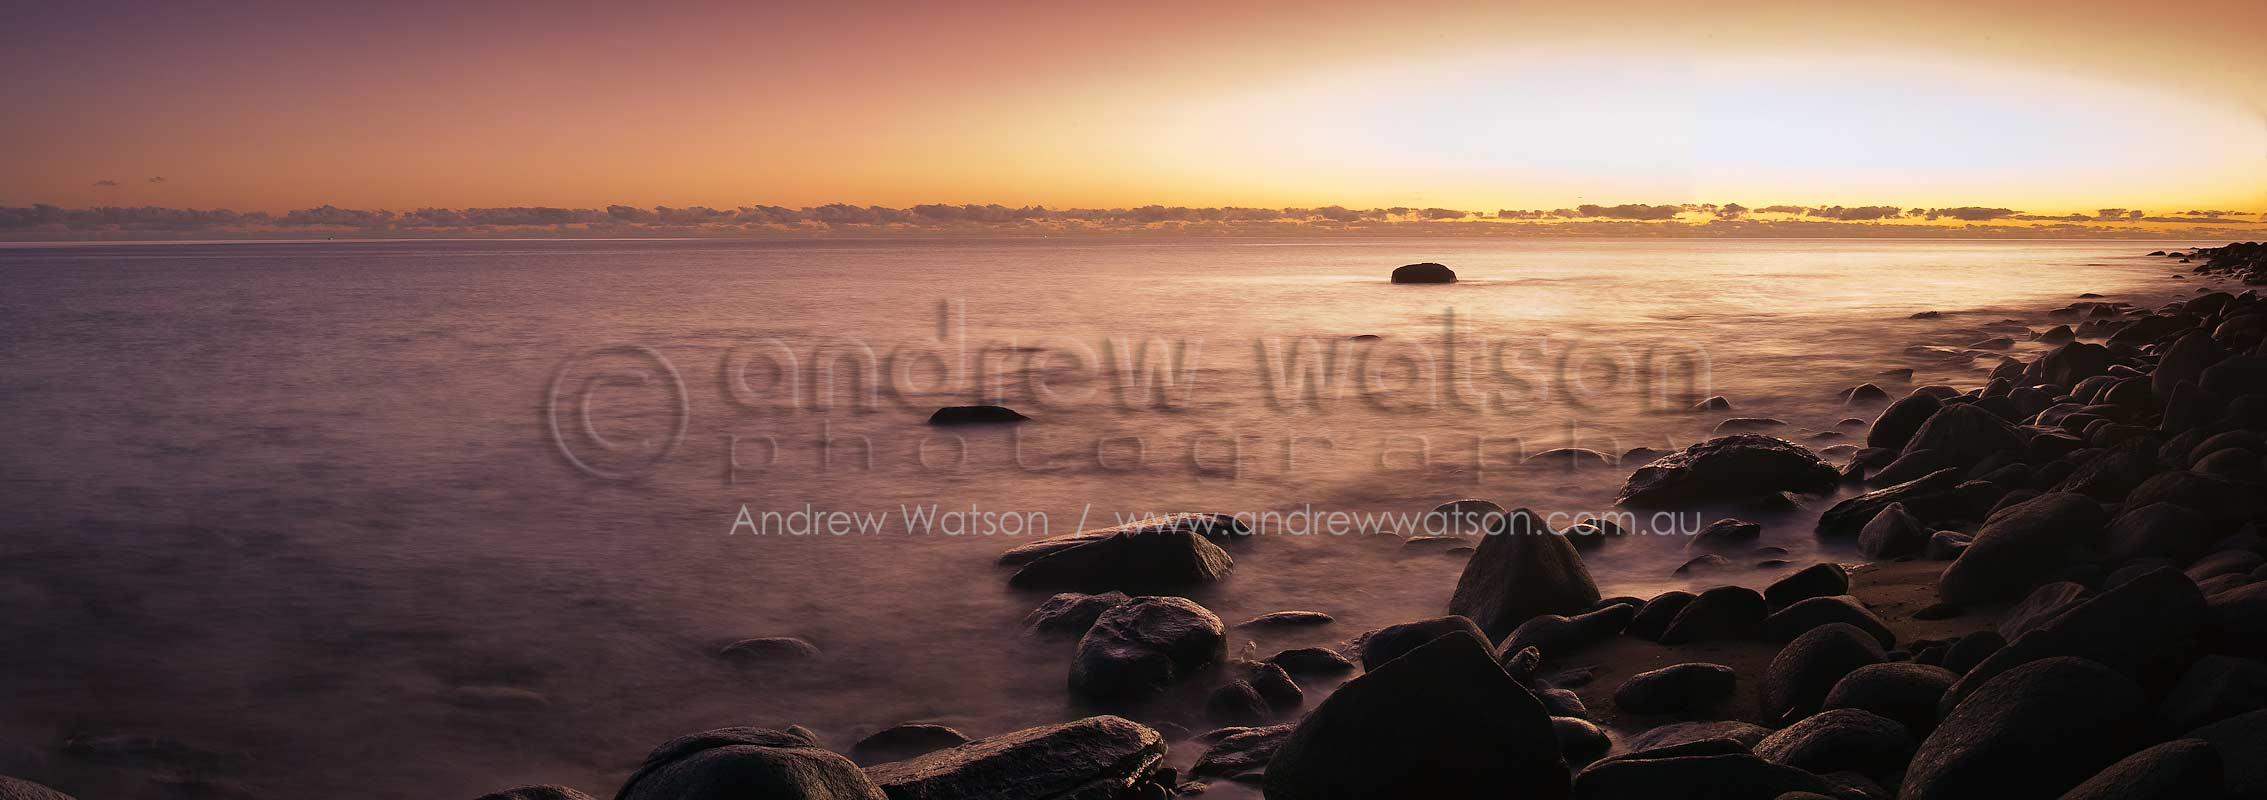 Sunrise over the Coral Sea at Pebbly BeachCairns, North QueenslandImage available for licensing or as a fine-art print... please enquire